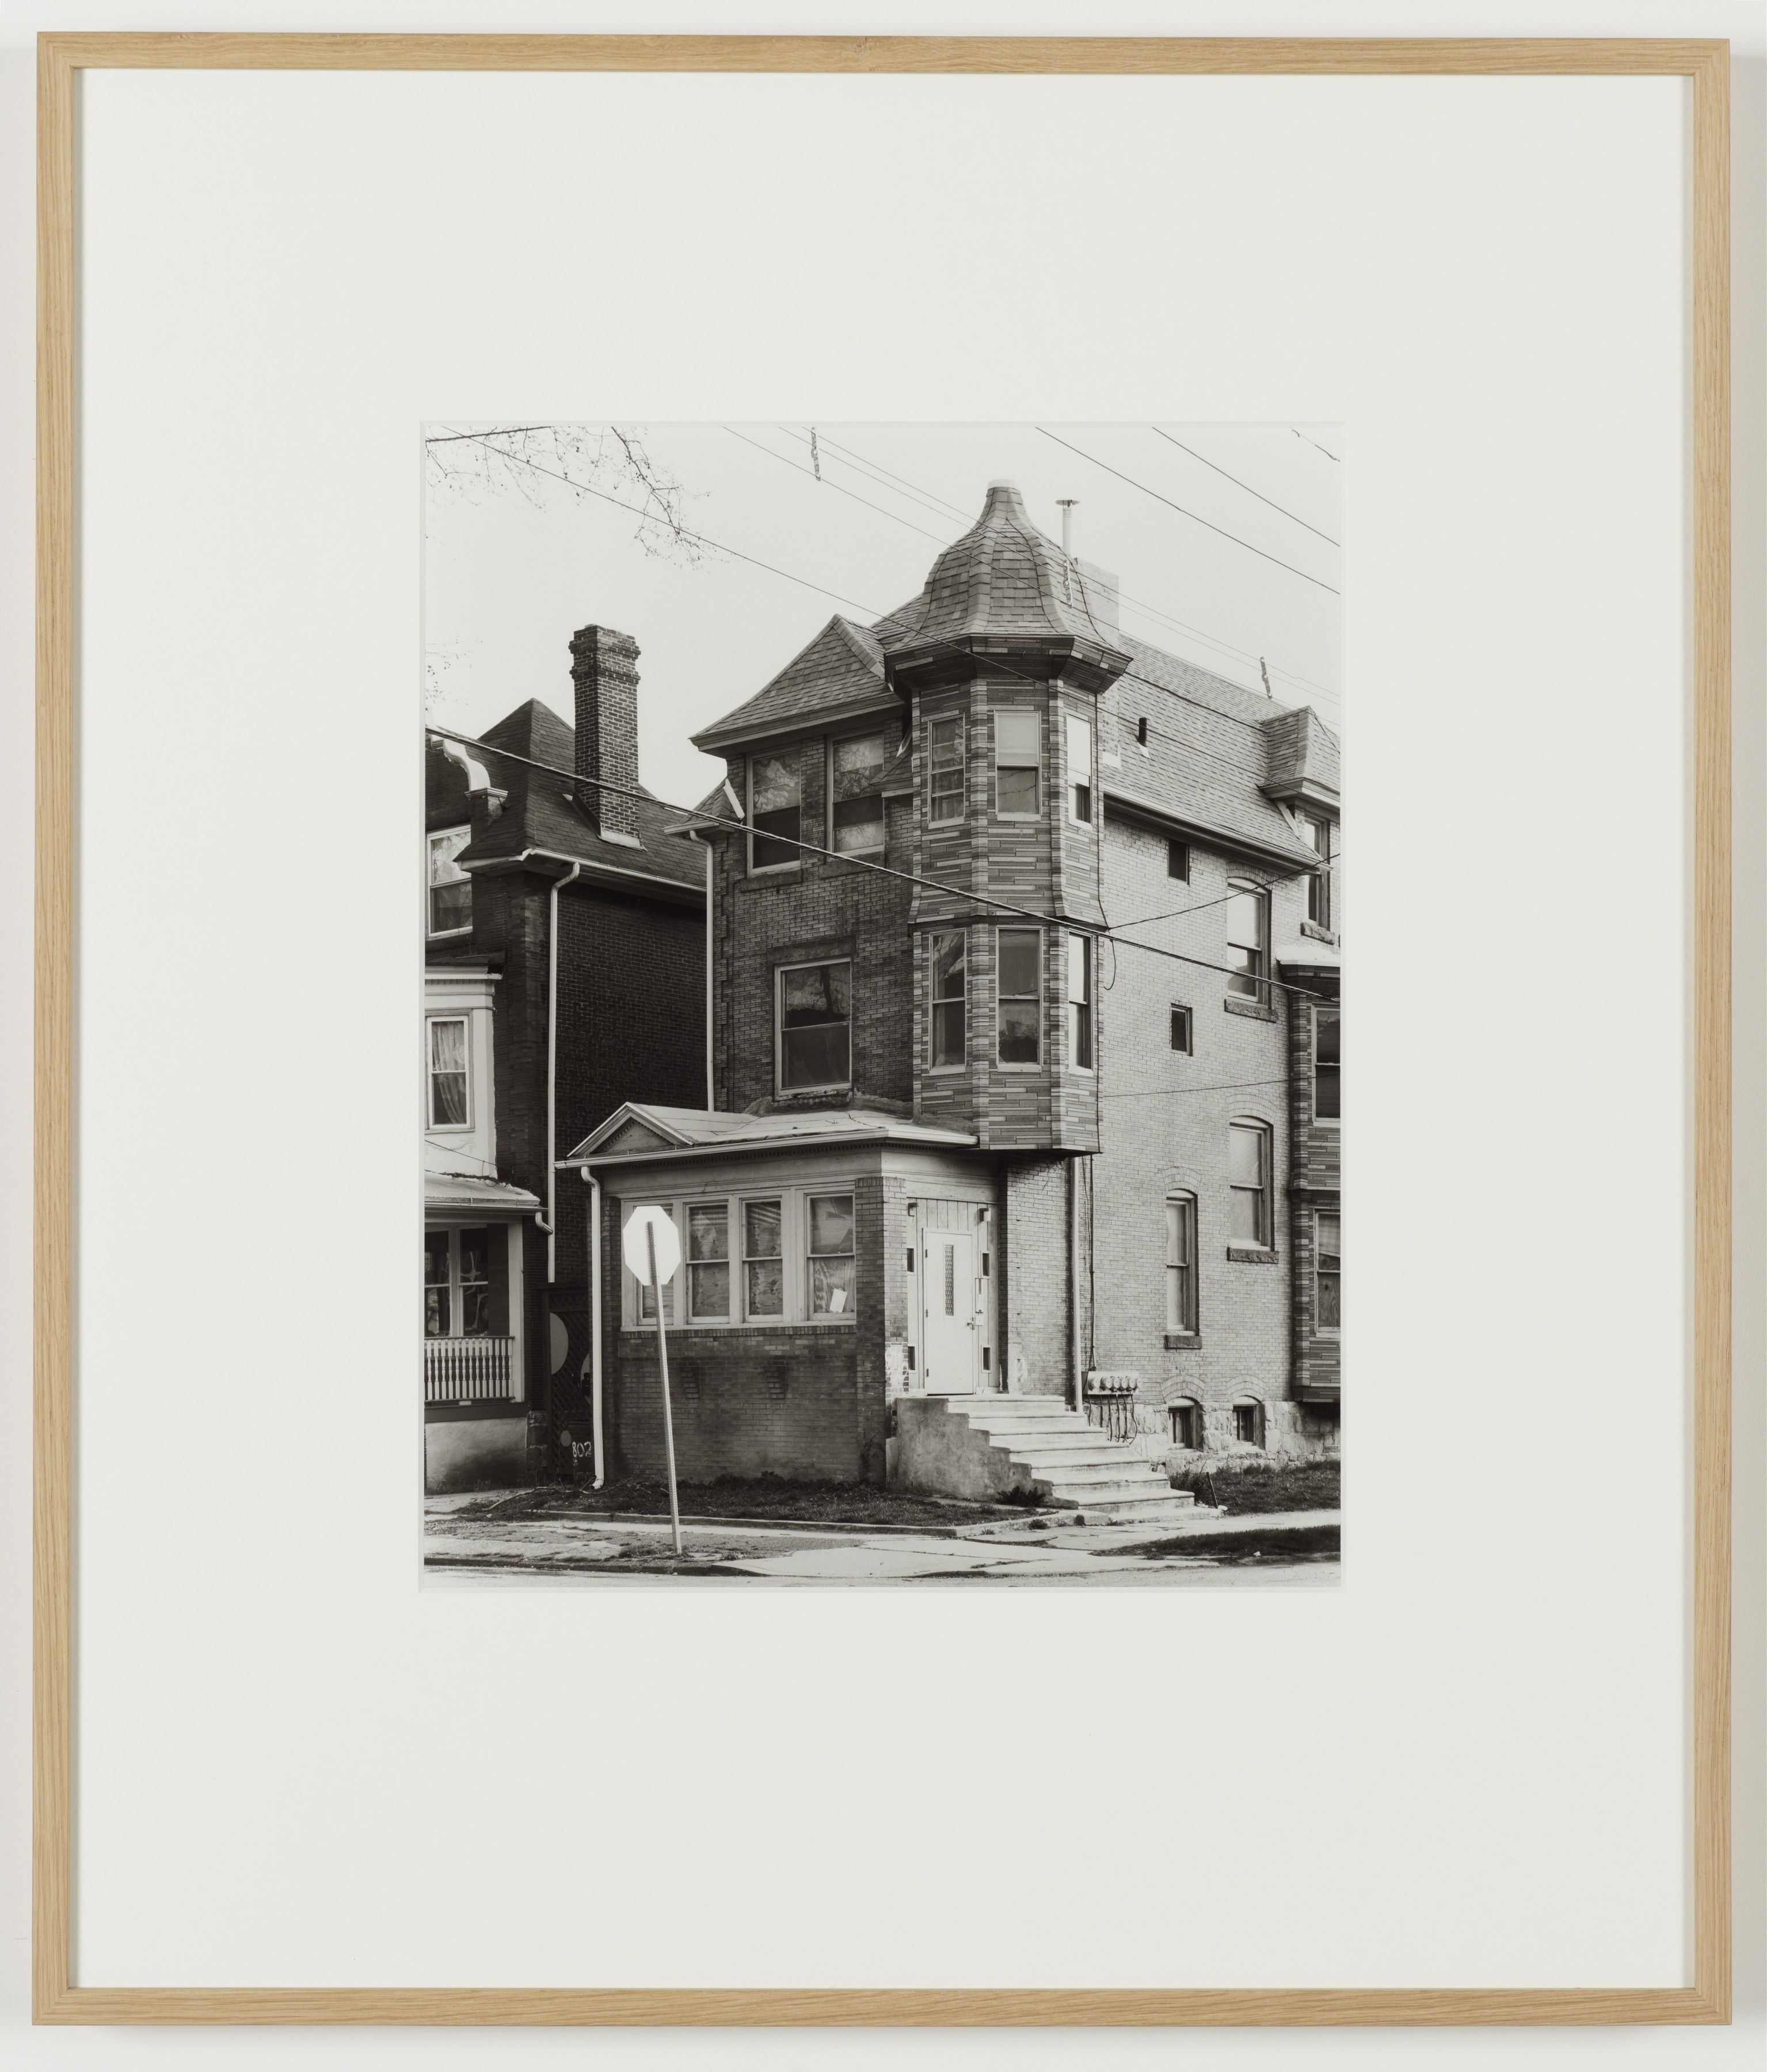 Joachim Koester, Some Boarded Up Houses, Philadelphia #2, 2009-2013, Silver gelatin print, 27 x  22 5/8 inches (68.6 x 57.5 cm)